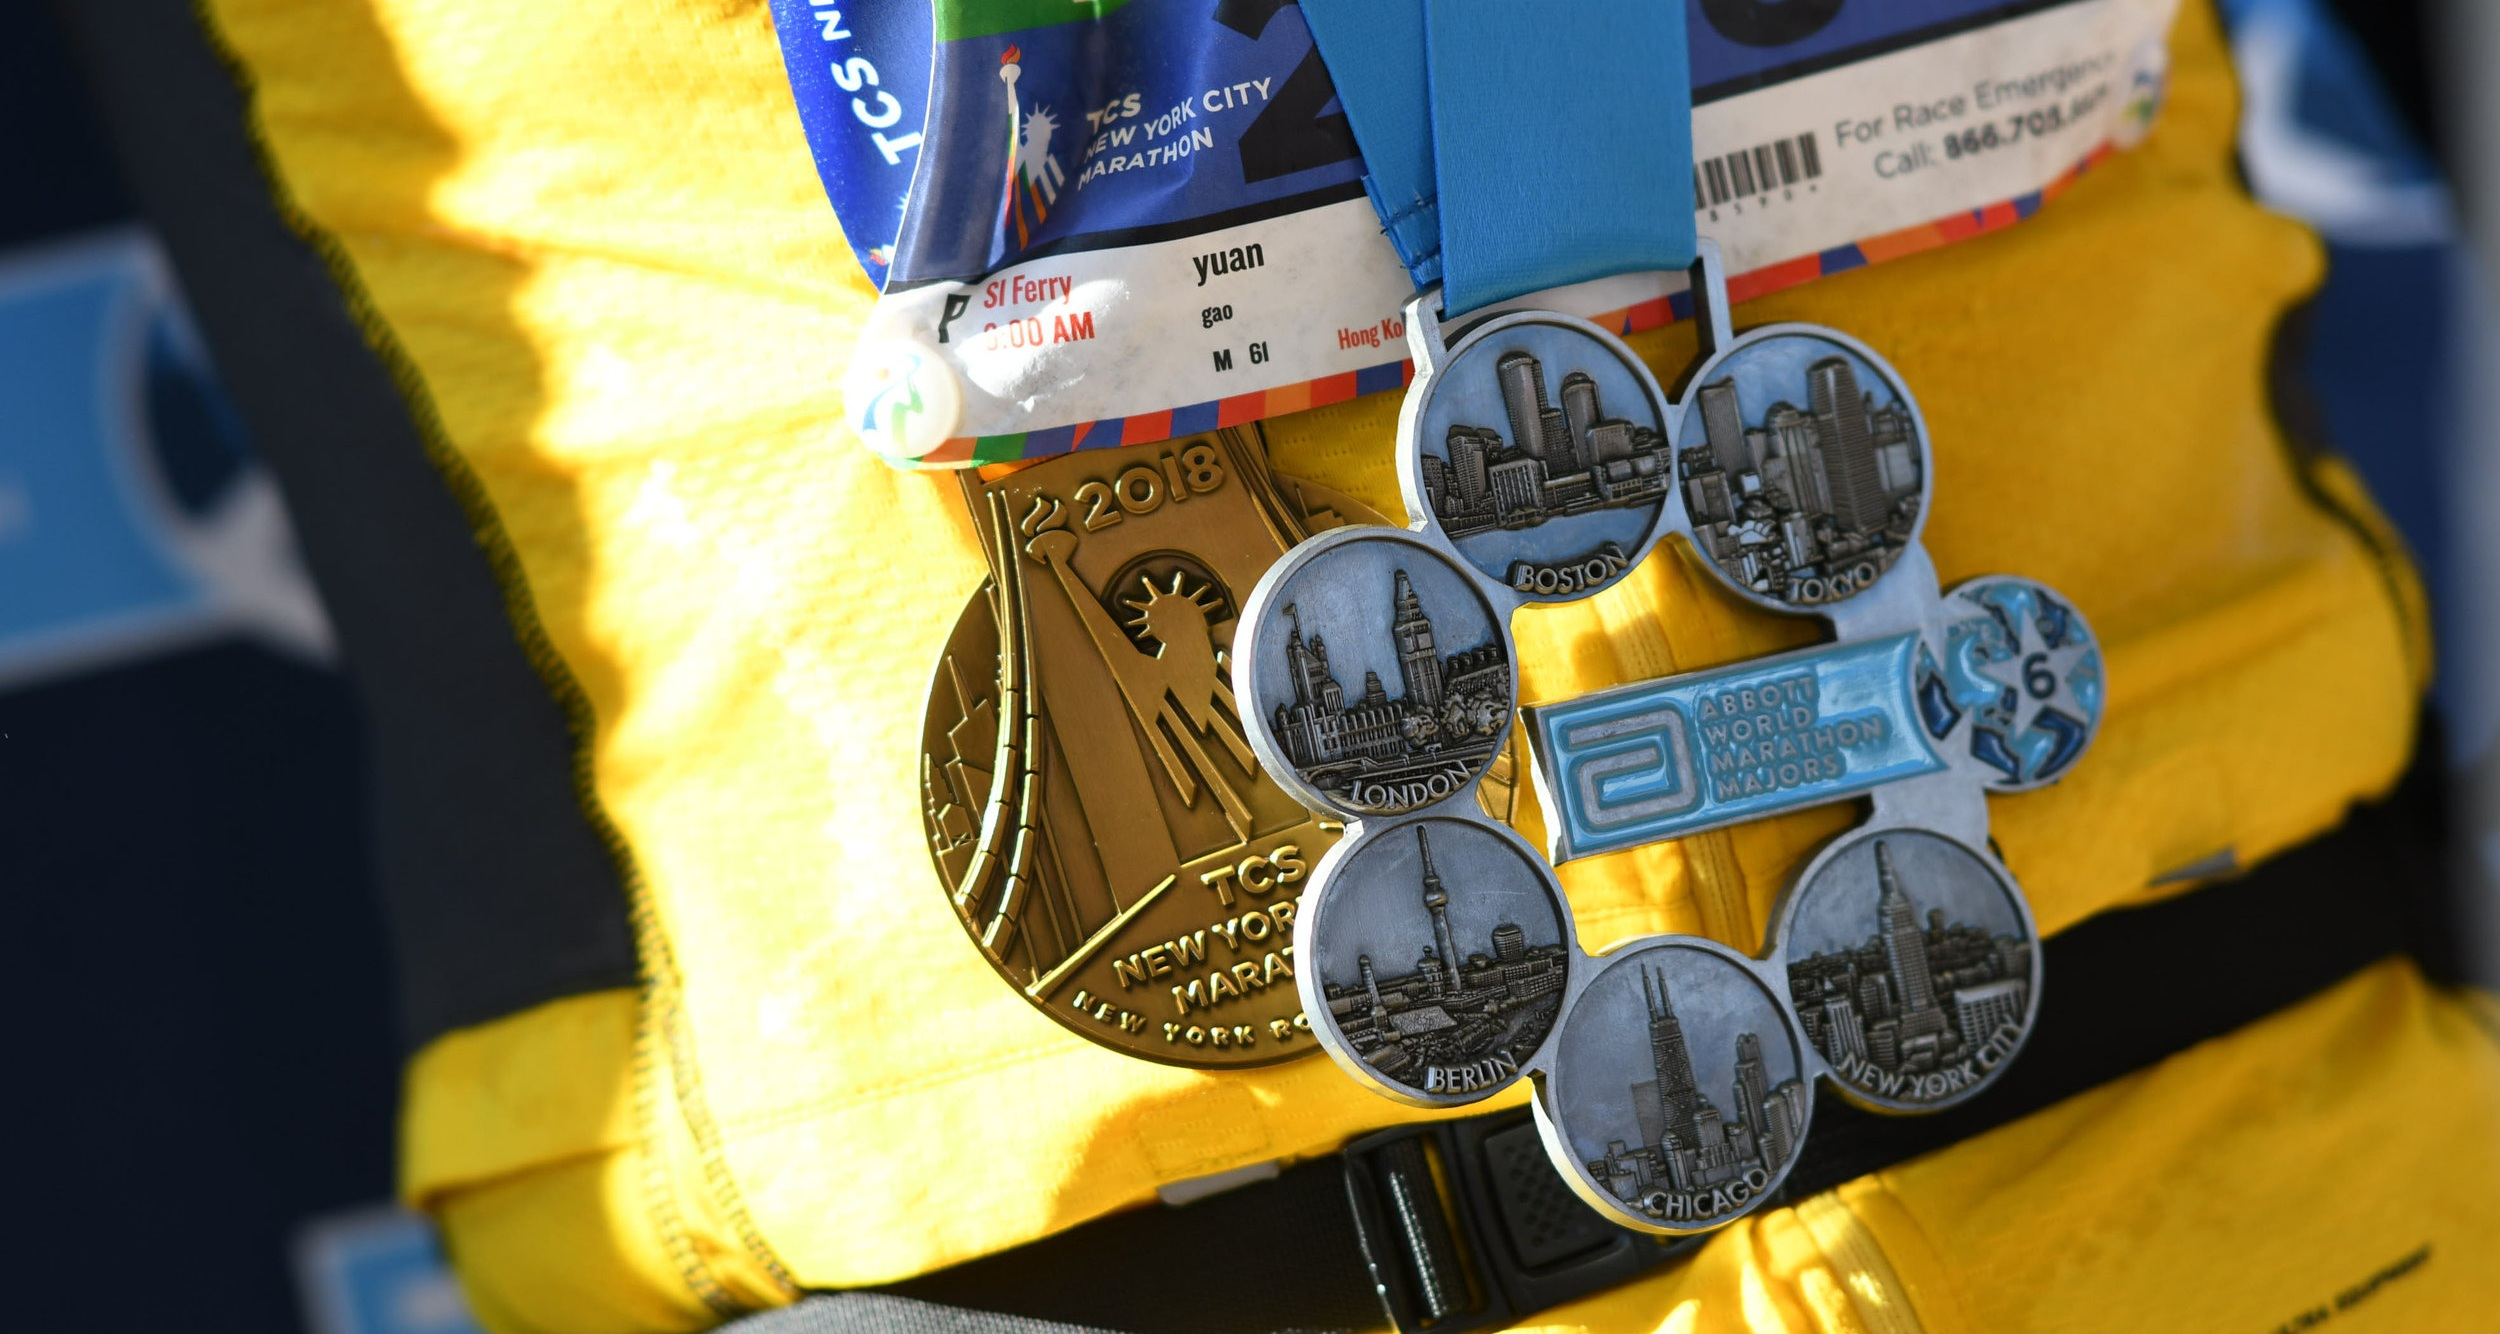 The Abbott World Marathon Majors Six Star Finisher medal